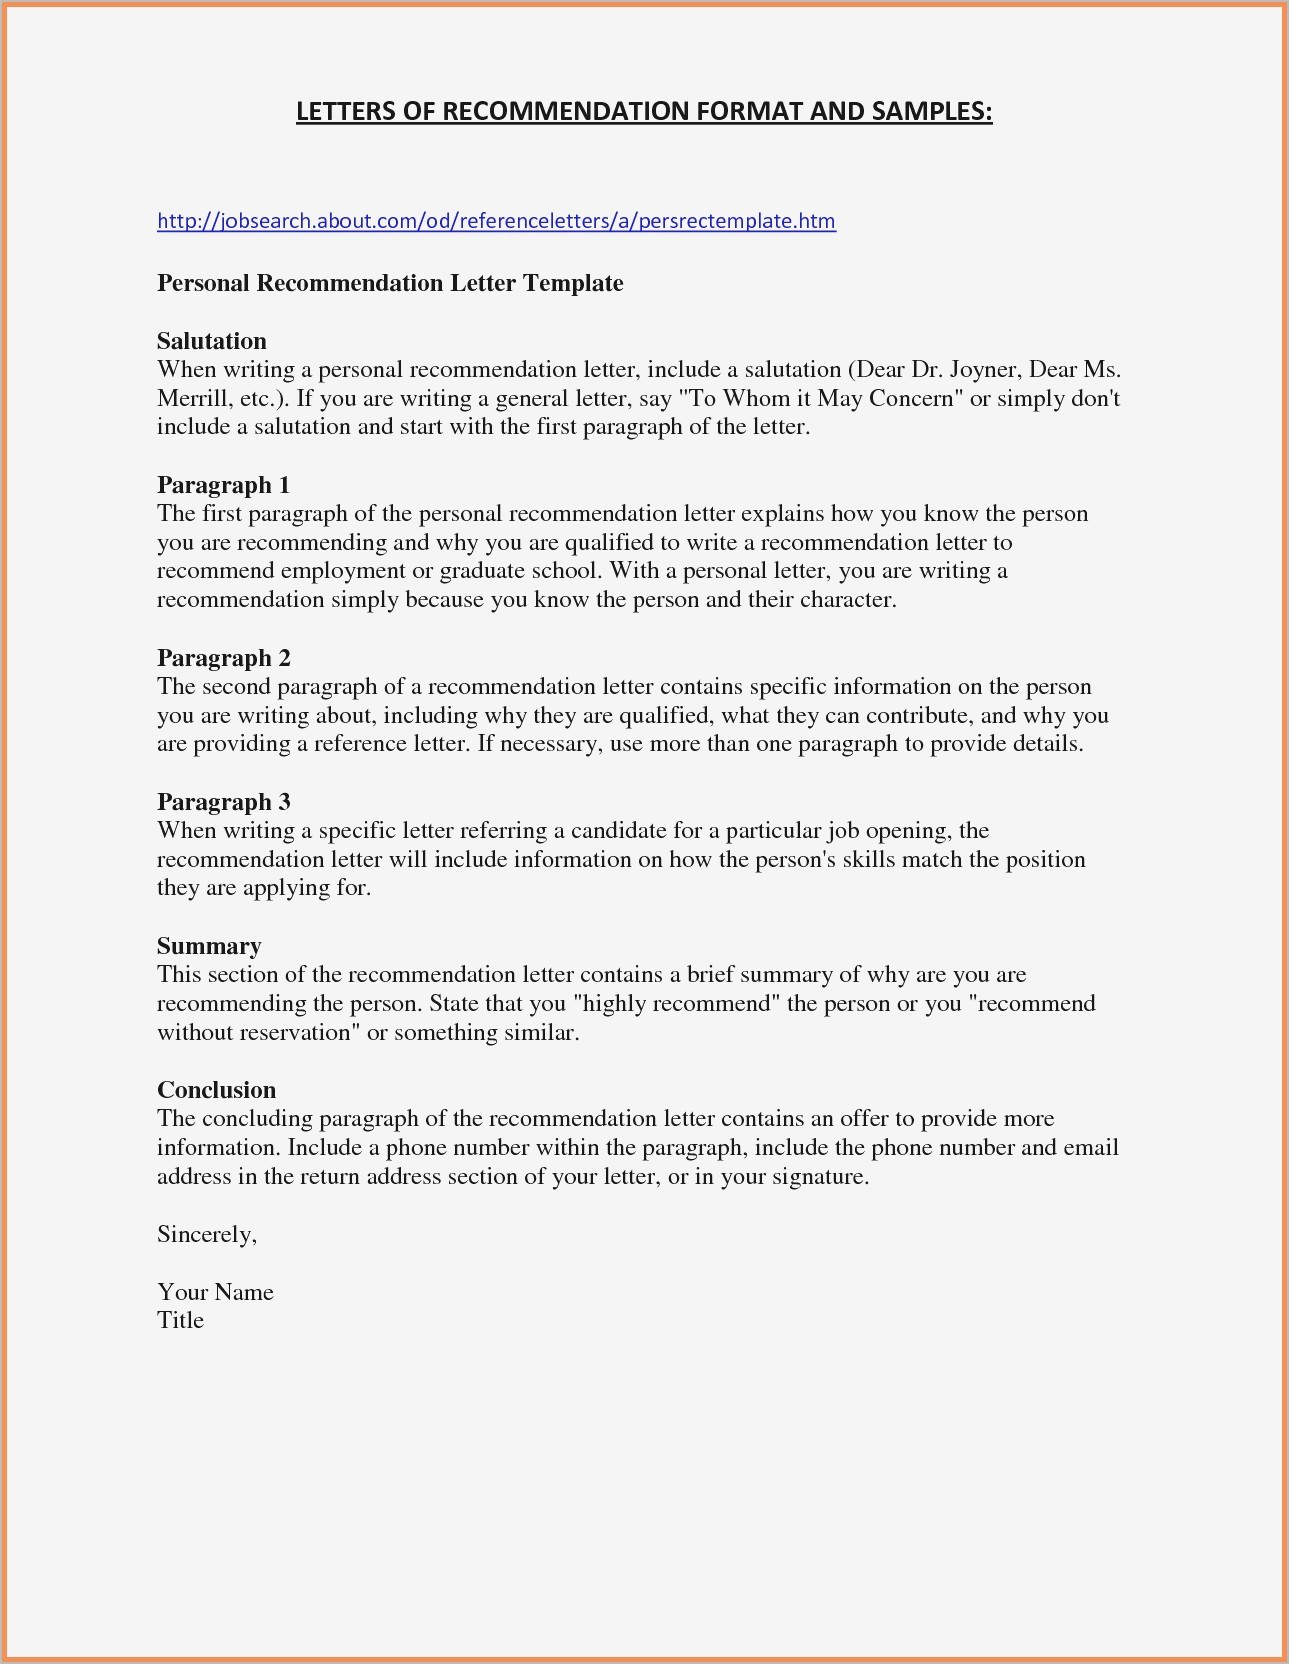 Free Reference Letter Template for Employment - Job Letter Re Mendation Template Best Free Letter Re Mendation